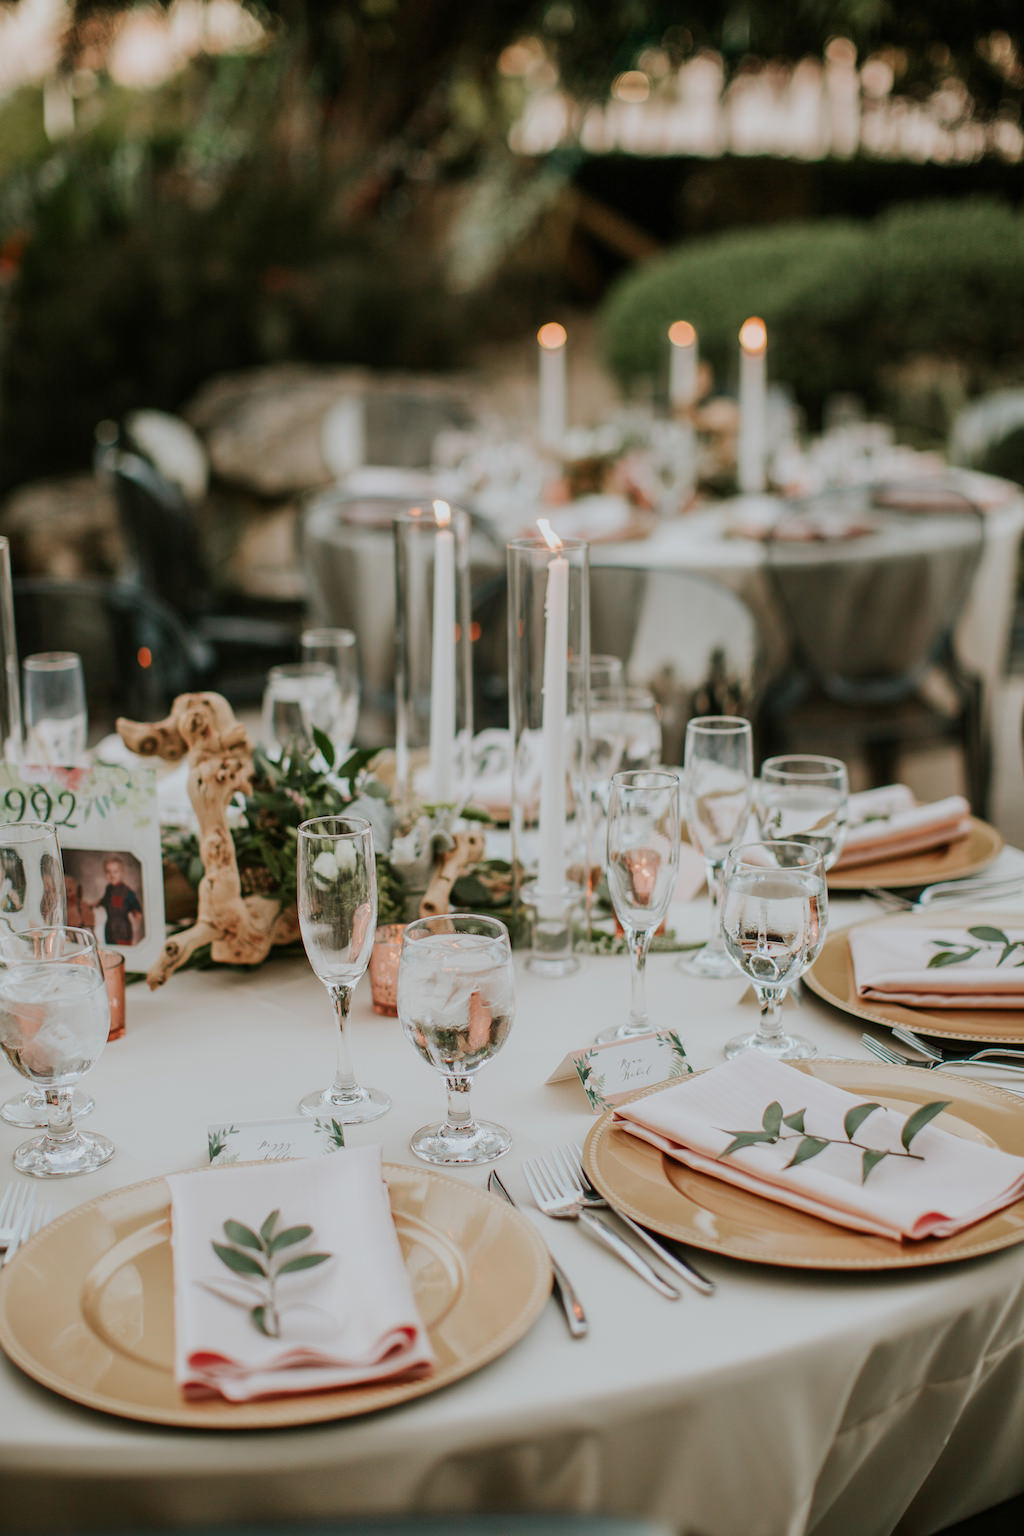 Romantic Modern Wedding Reception Decor, Round Tables with Ivory Linens, Gold Chargers with Pink Napkins | Tampa Bay Wedding Planner UNIQUE Weddings + Events | Wedding Rentals A Chair Affair | Wedding Linens Over the Top Rental Linens